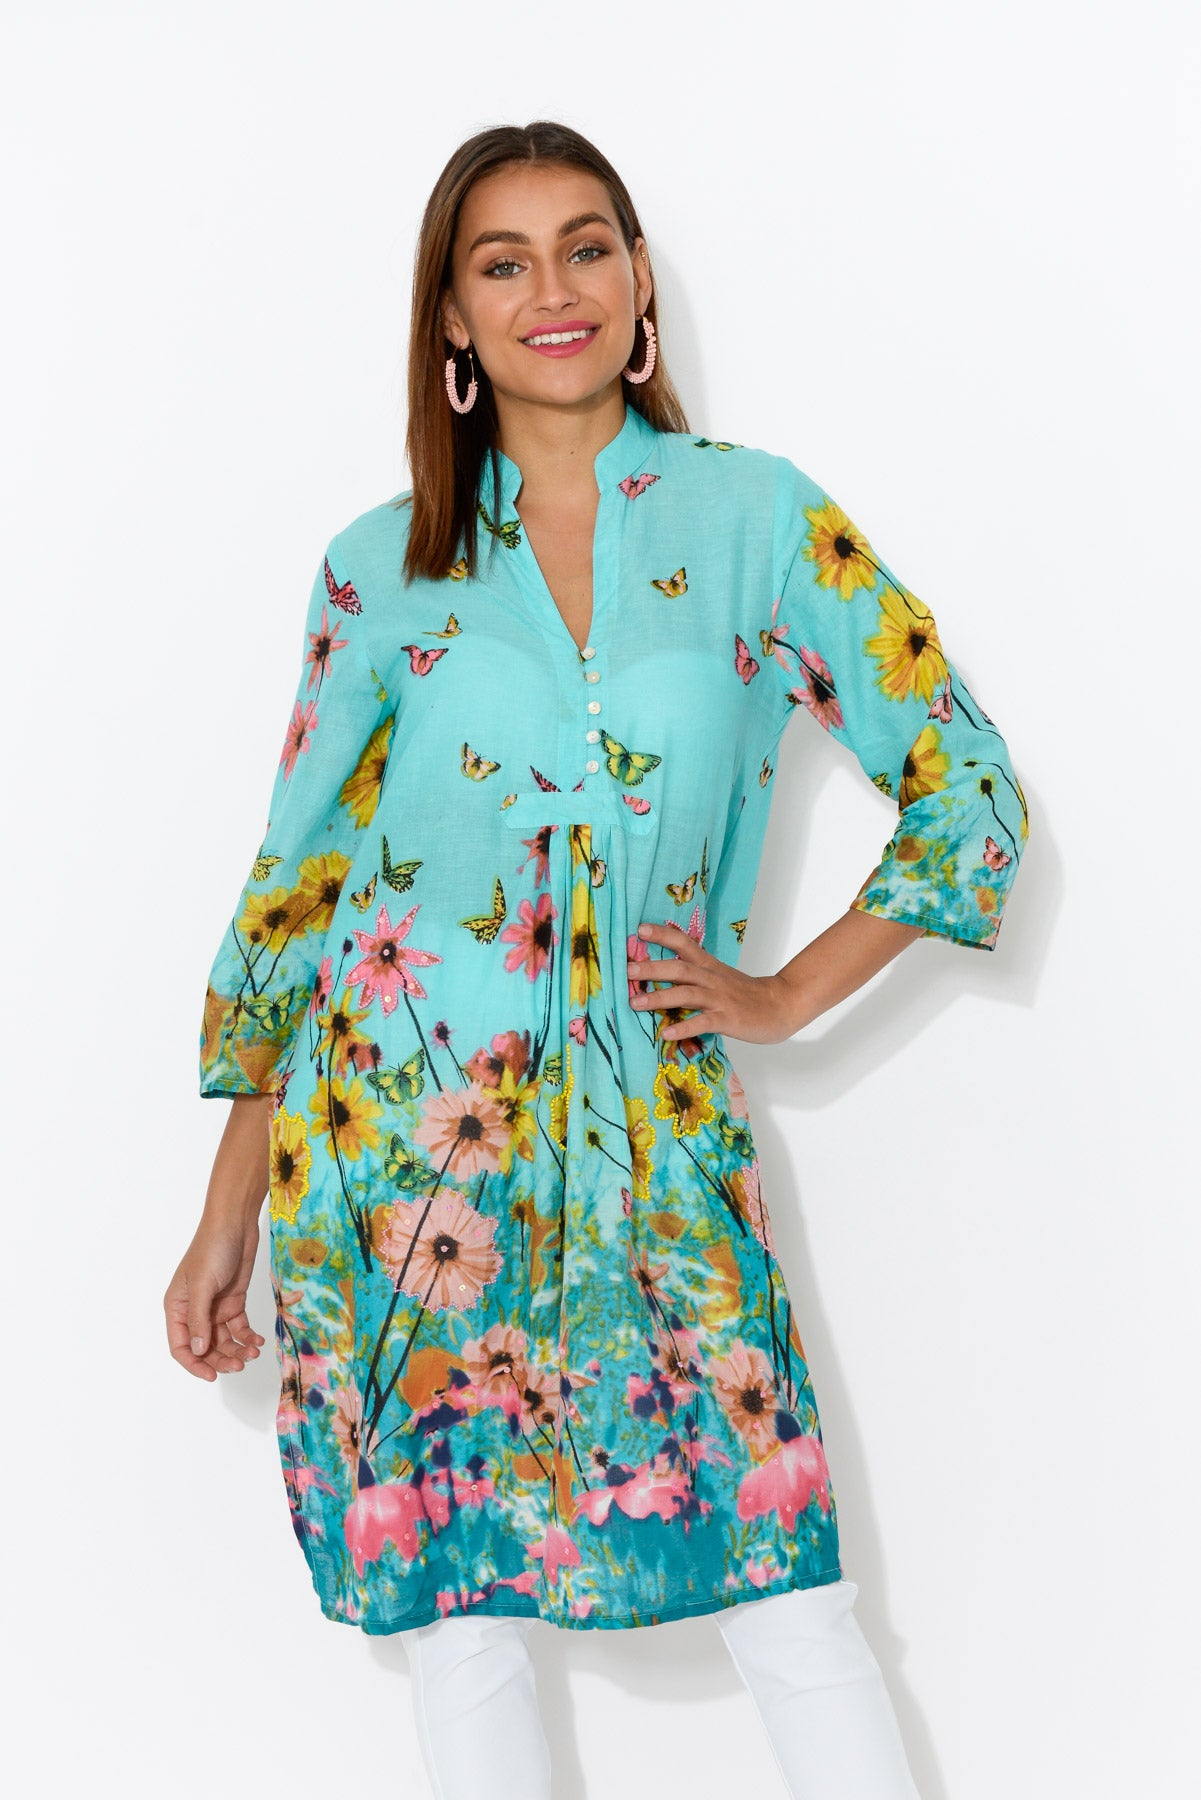 Malolo Blue Garden Sleeved Cotton Dress - Blue Bungalow